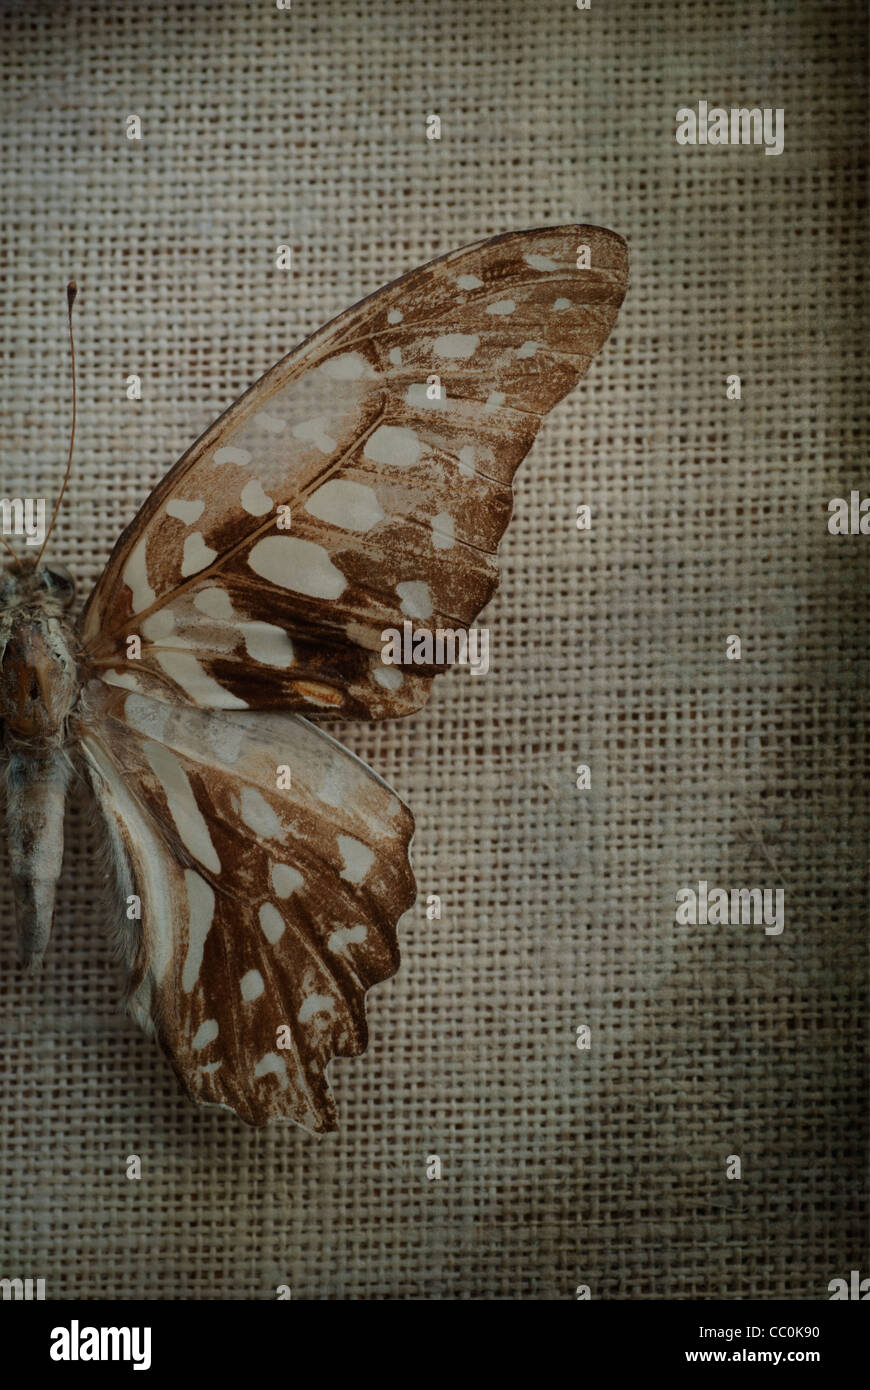 Detail of a dry butterfly wing - Stock Image